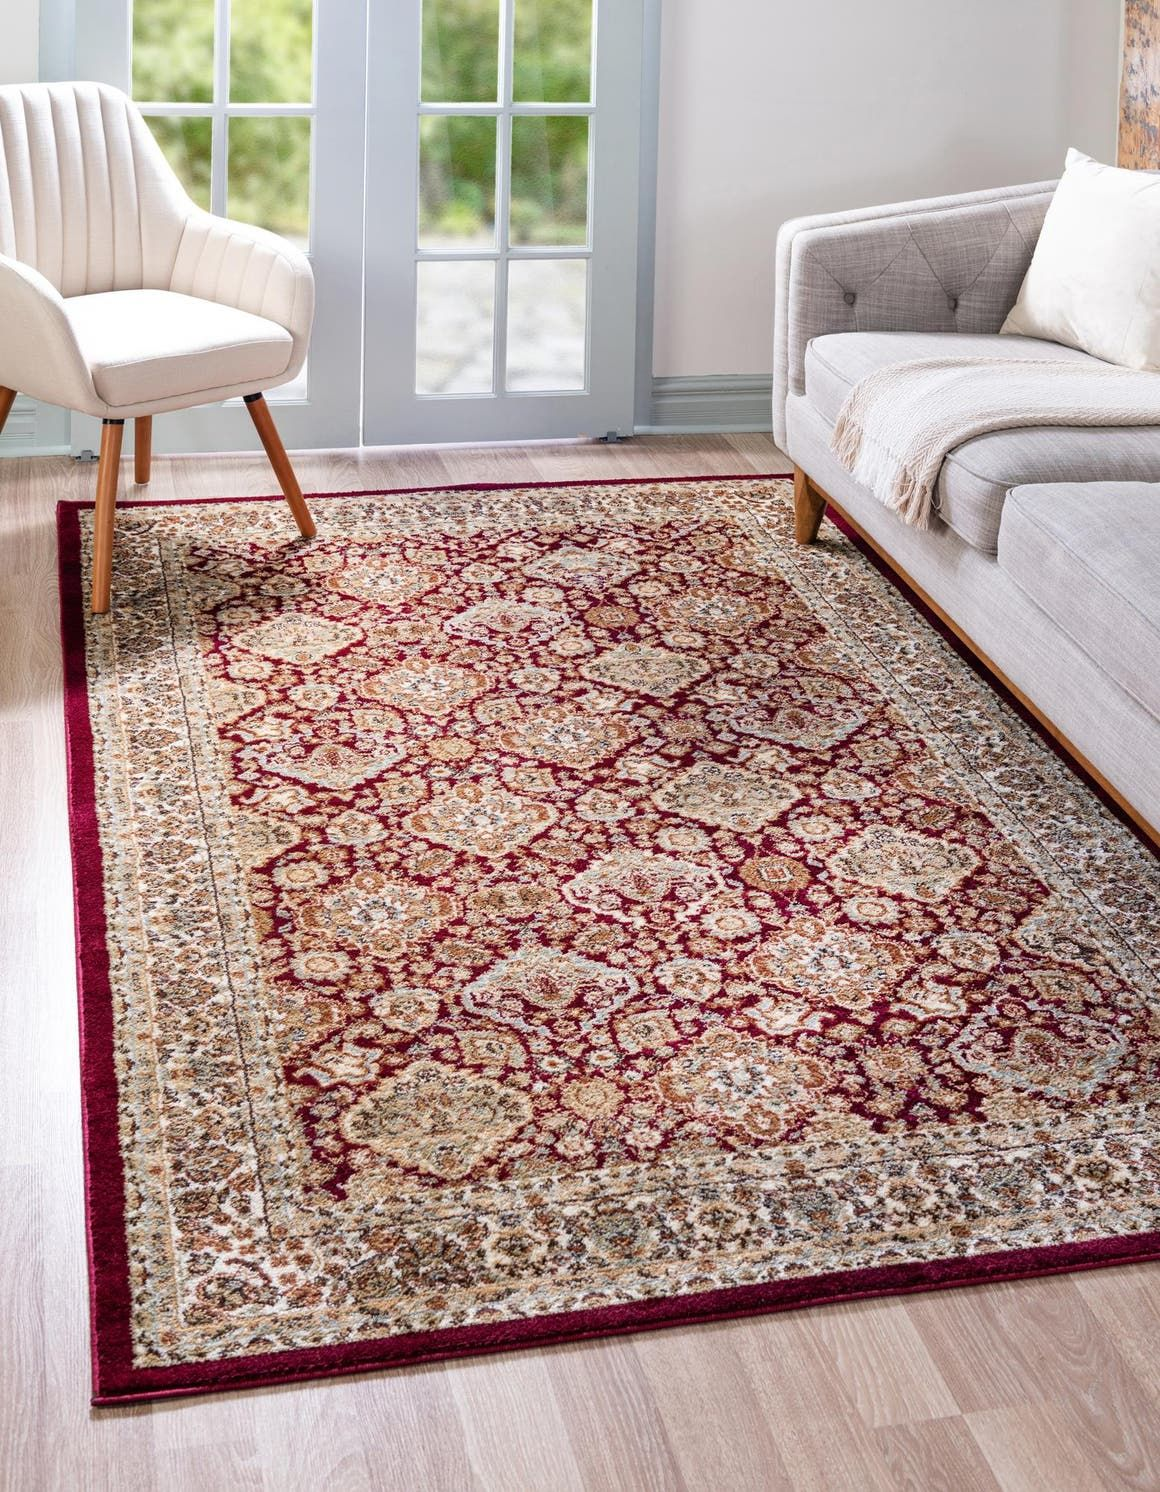 Red Classic Agra Area Rug In 2020 Rugs Clearance Rugs 5x8 Area Rugs